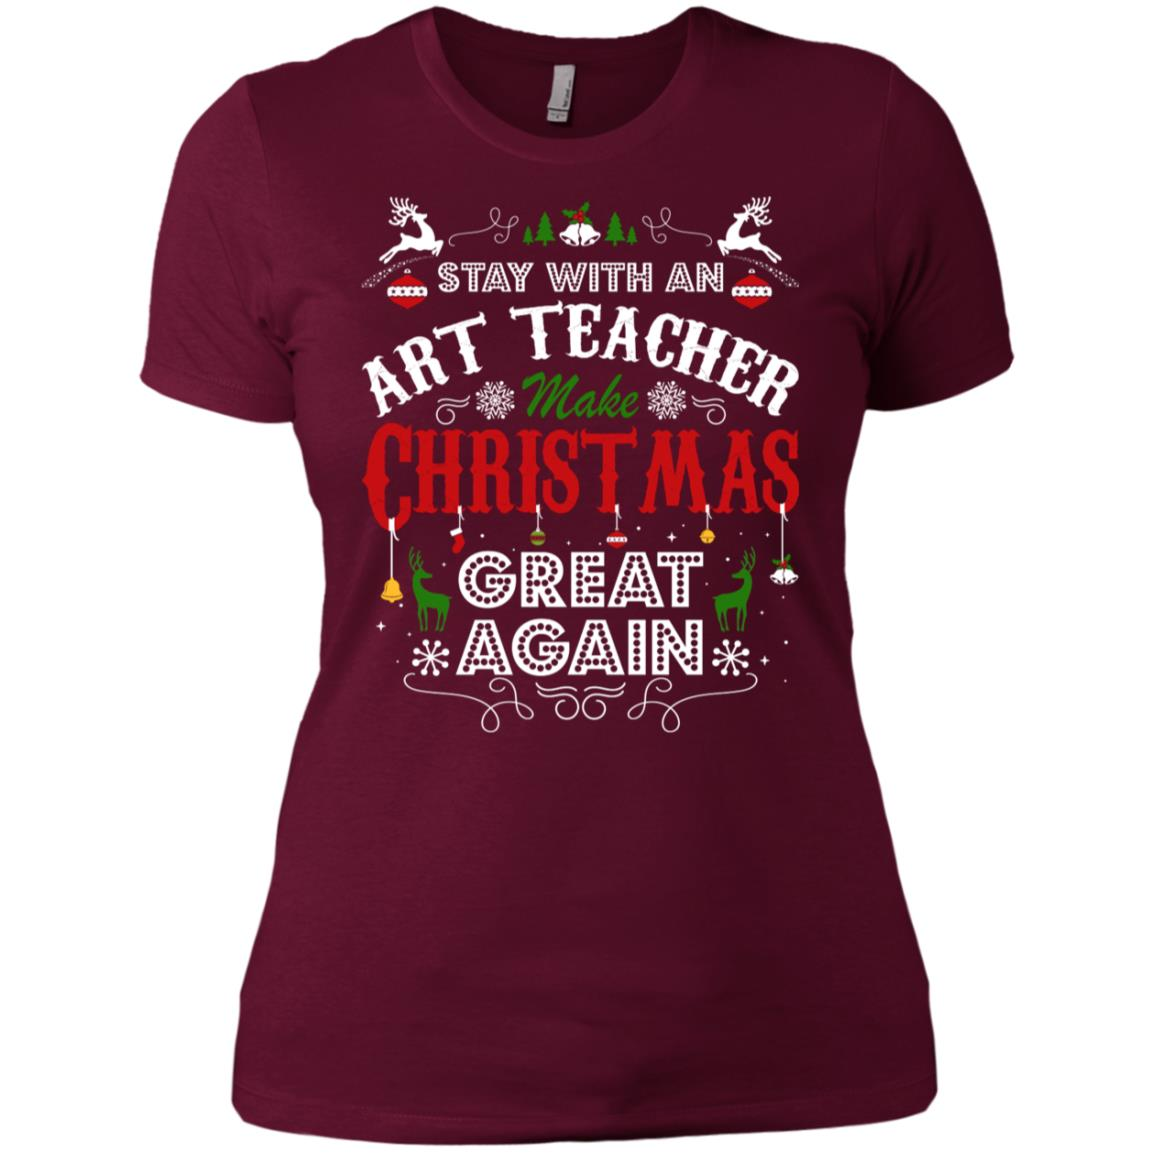 Art Teacher Make Christmas Great Again Women's Short Sleeve Shirts